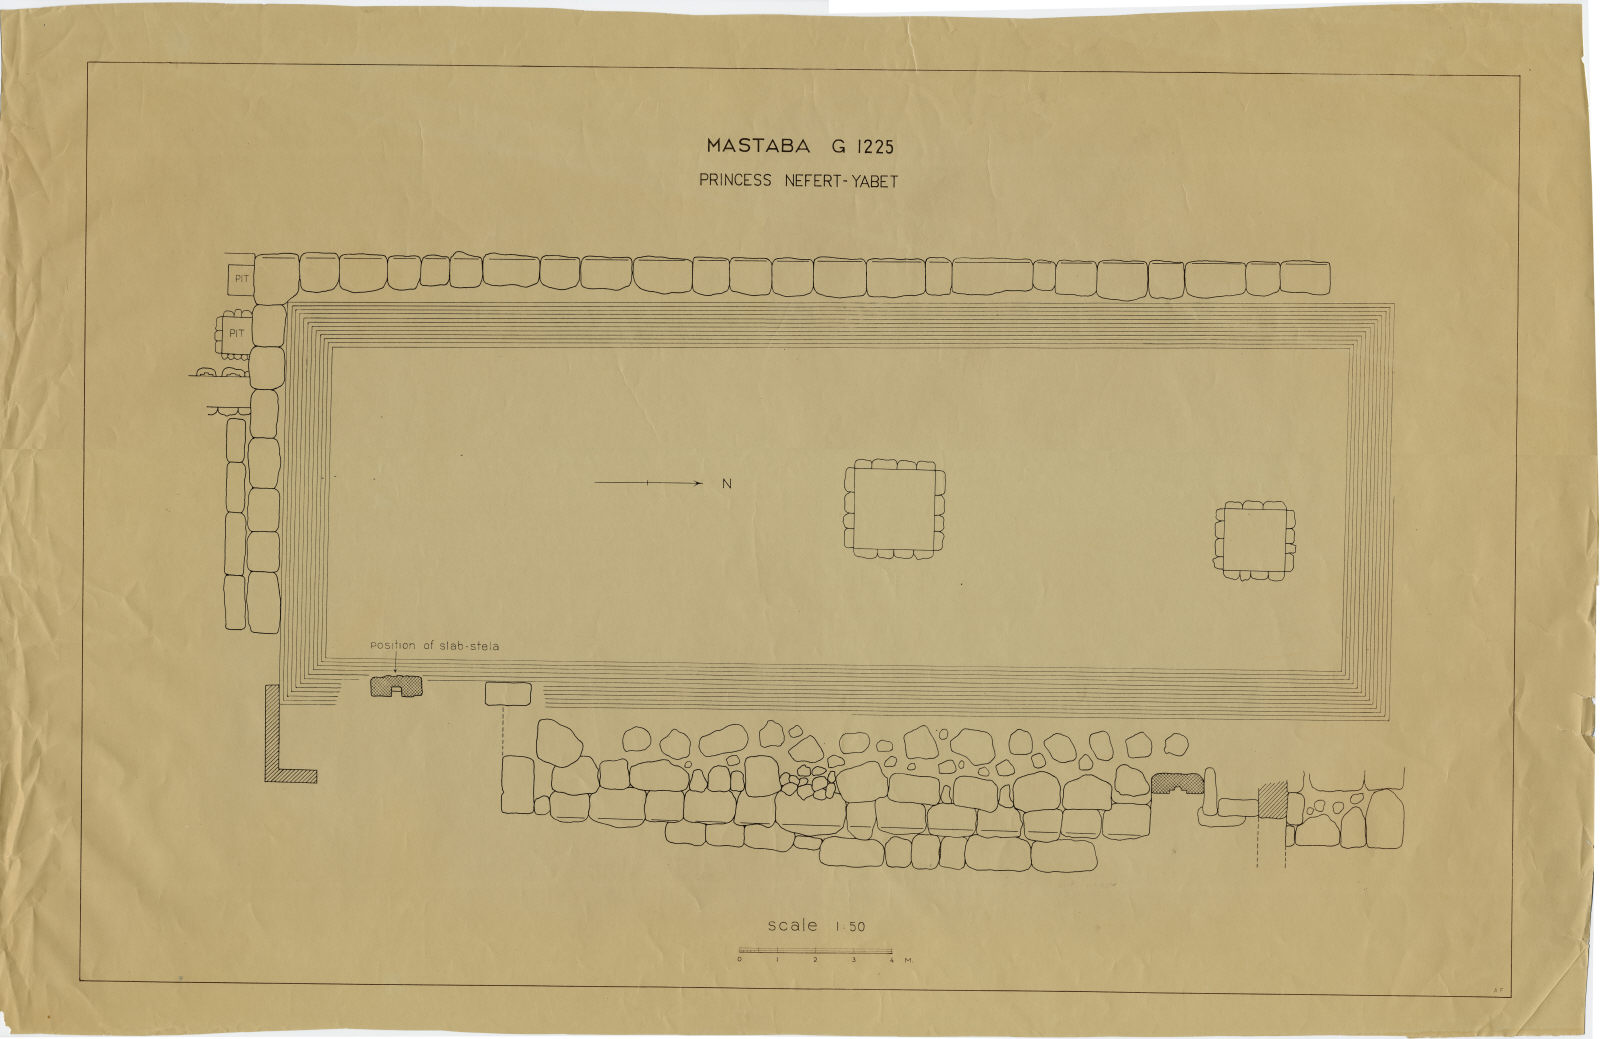 Maps and plans: Plan of G 1225 and G 1225-Annex